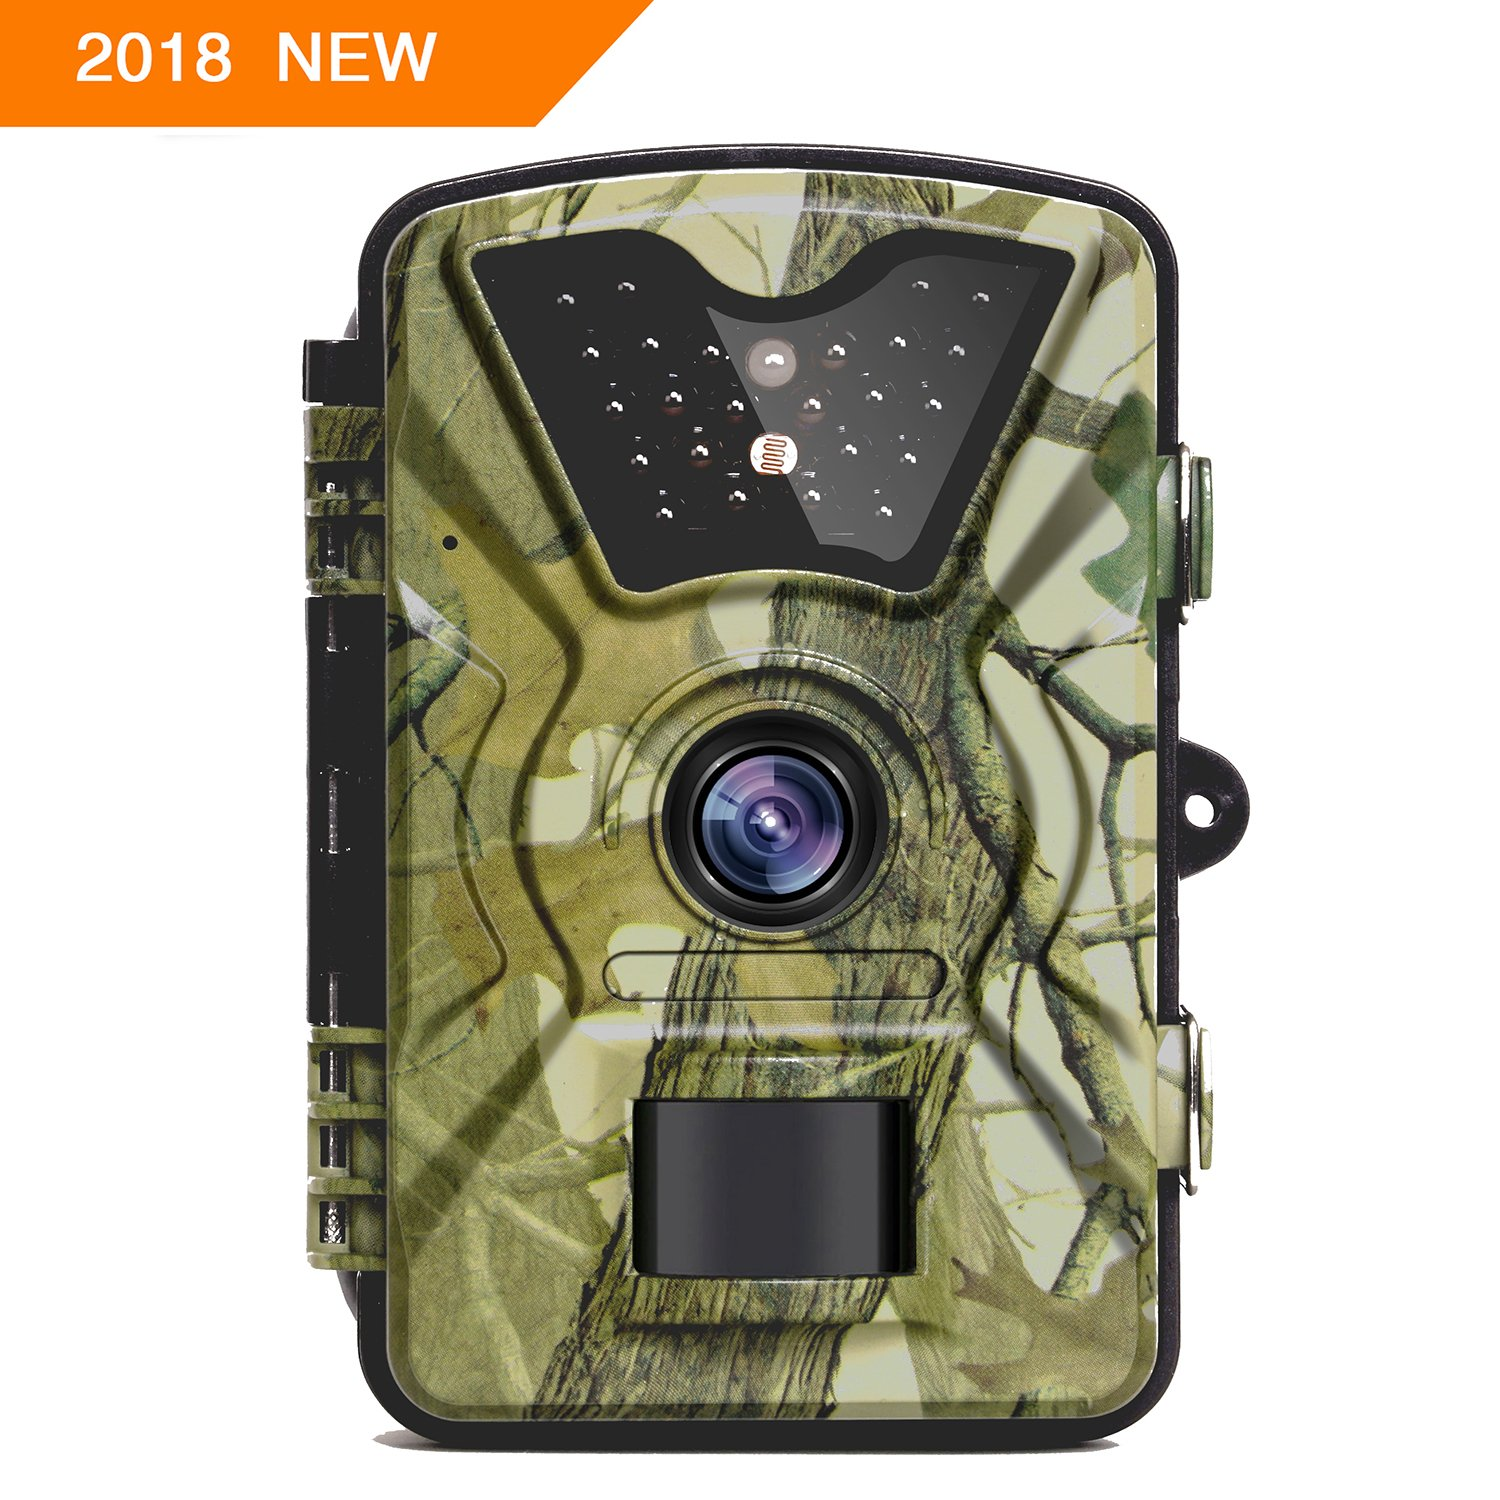 """【NEW VERSION】Trail Camera Trail Game Cameras 12MP 1080P 2.4"""" LCD Infrared Night Vision Hunting Camera with 24LEDs, Motion Sensor and 940nm IR LEDs , Up to 65ft/20m, 0.5s Trigger Speed, IP66 Waterproof"""